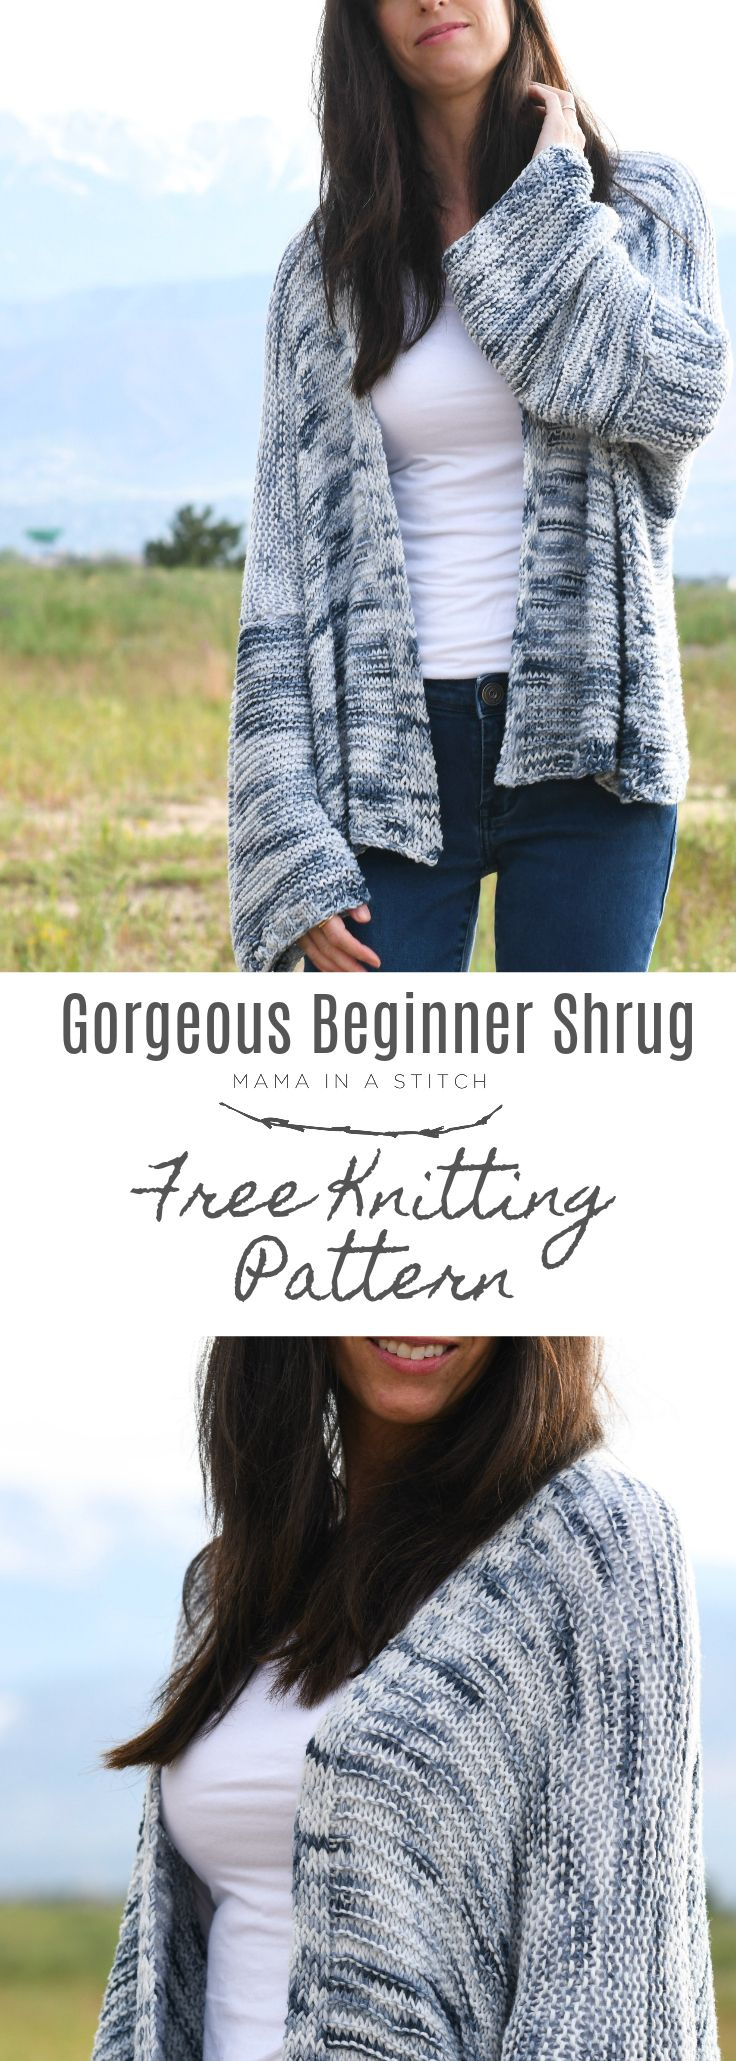 Painted Sky Comfy Shrug – Beginner Sweater Pattern